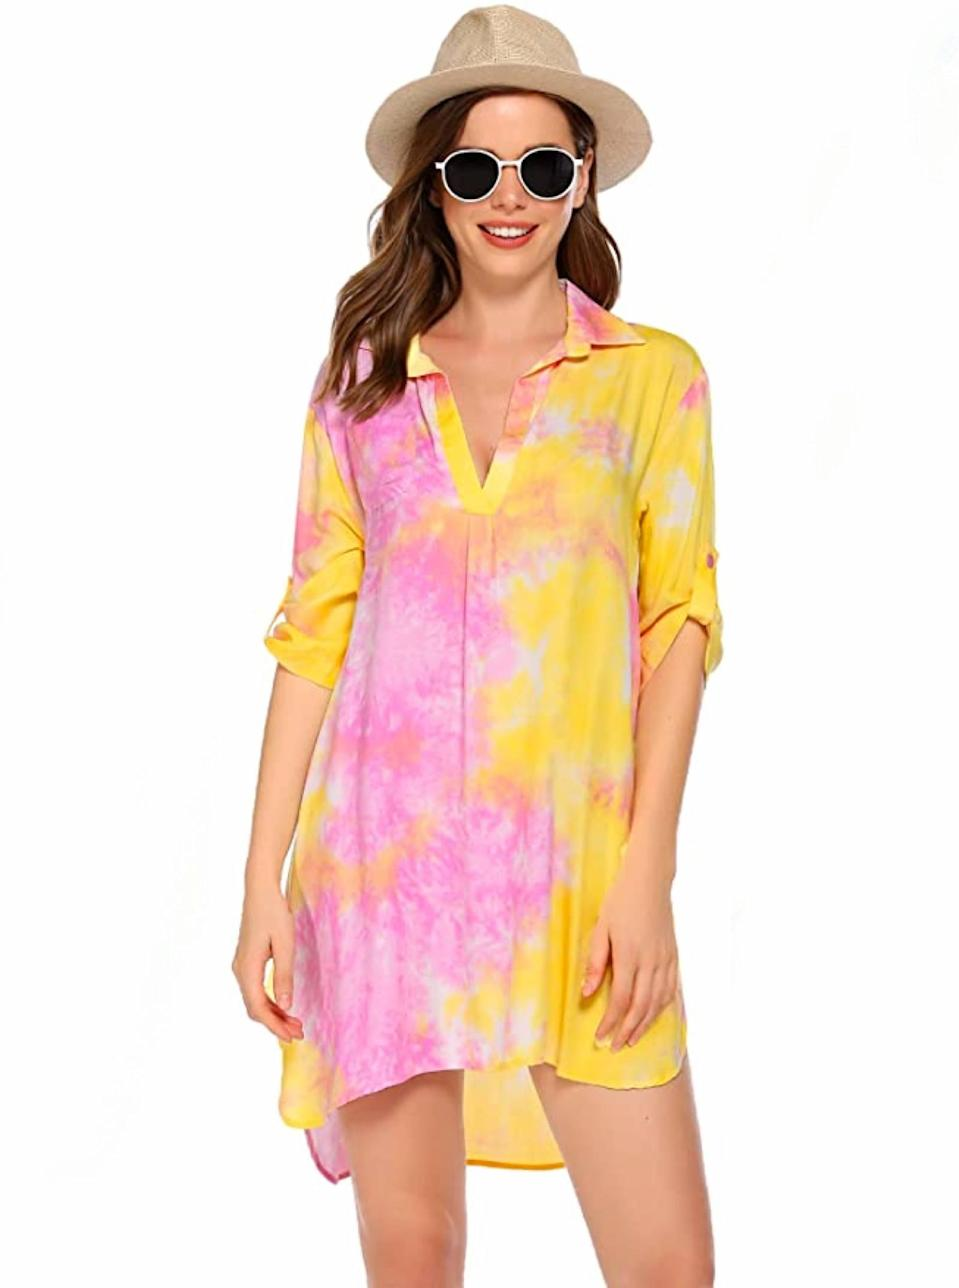 """Already planning for summer adventures? This tie-dye shirt dress is the beach bag essential we need in our life. $27, Amazon. <a href=""""https://www.amazon.com/Ekouaer-Womens-Swimsuit-Swimwear-Bathing/dp/B08DH9CW6X/"""" rel=""""nofollow noopener"""" target=""""_blank"""" data-ylk=""""slk:Get it now!"""" class=""""link rapid-noclick-resp"""">Get it now!</a>"""